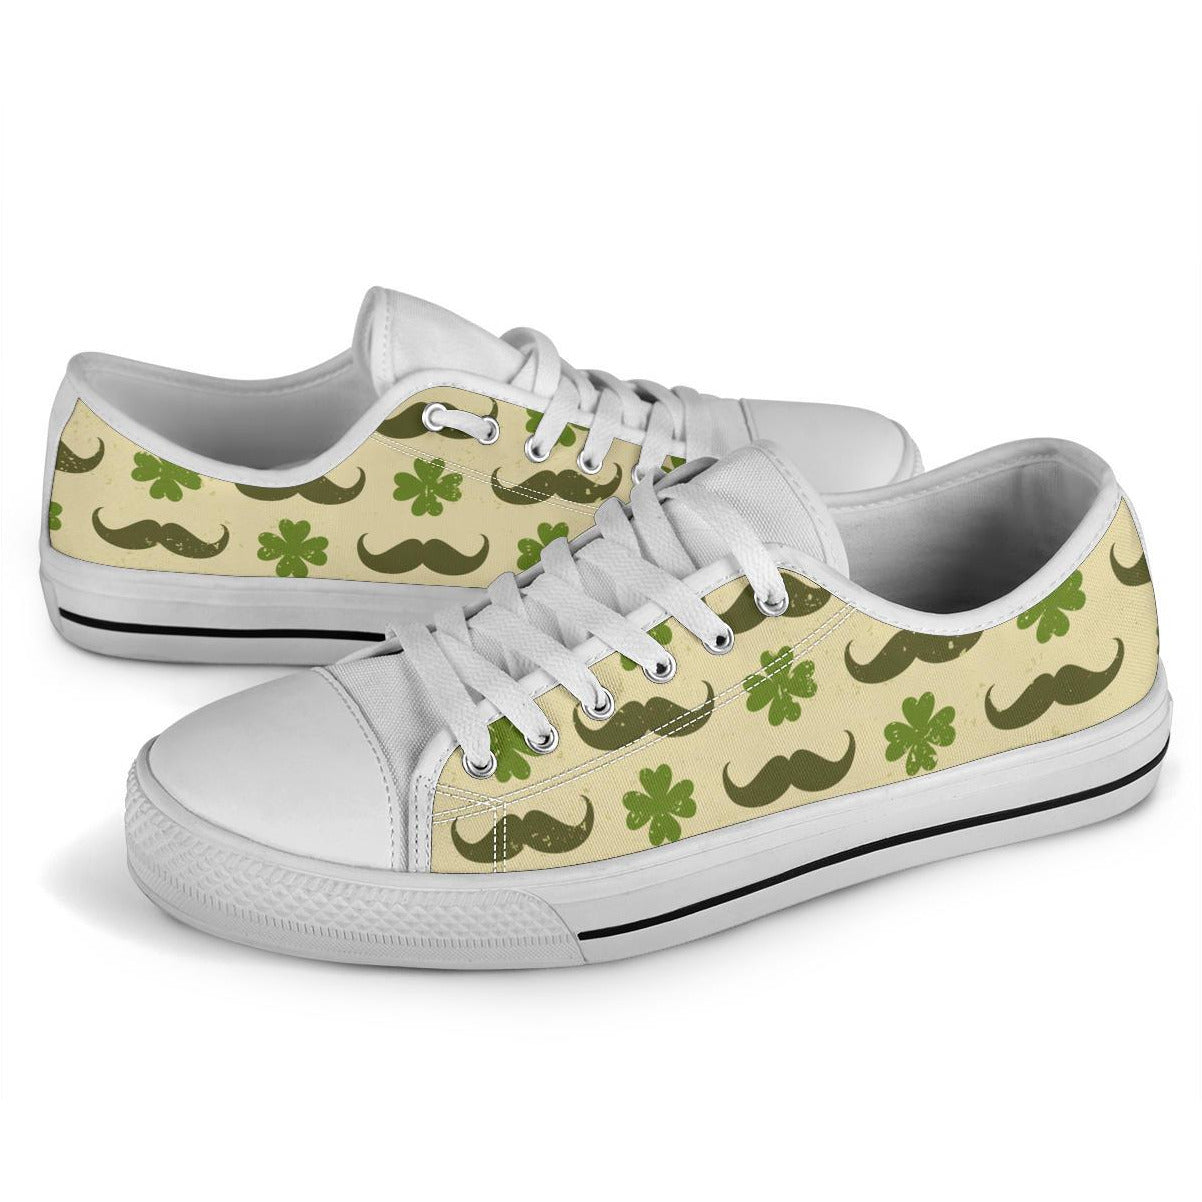 Unisex Clovers and Mustache - Low top canvas shoe